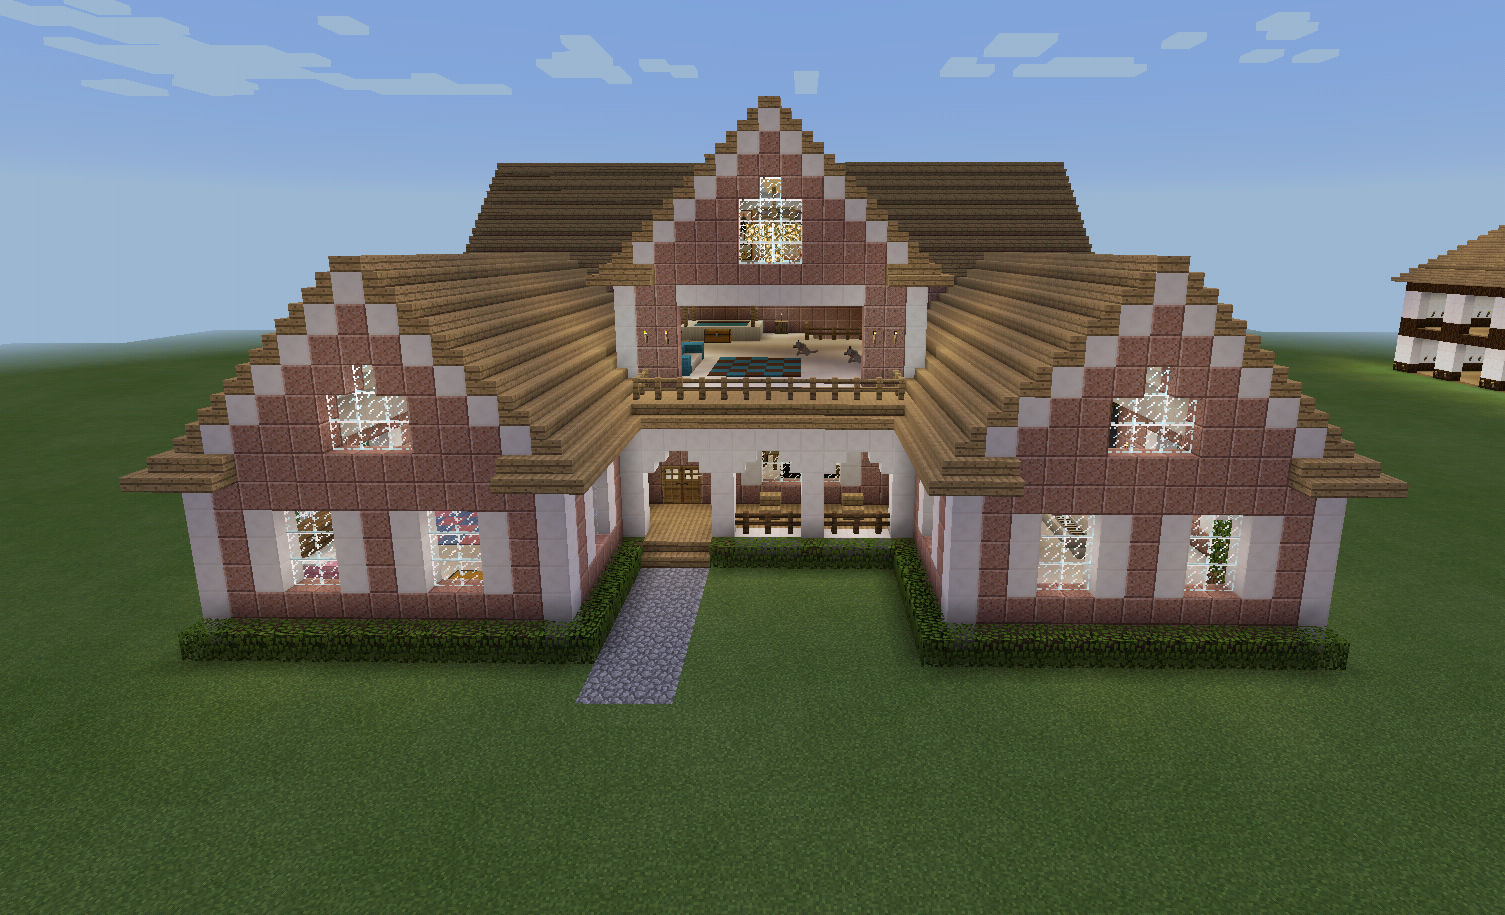 c740988524154daf76813ba22e54d6cb Minecraft Country House Plans on minecraft country furniture, npc minecraft village floor plans, minecraft cathedral plans, sims 3 country house plans, minecraft building plans, minecraft mansion plans, minecraft country kitchen, minecraft beach house,